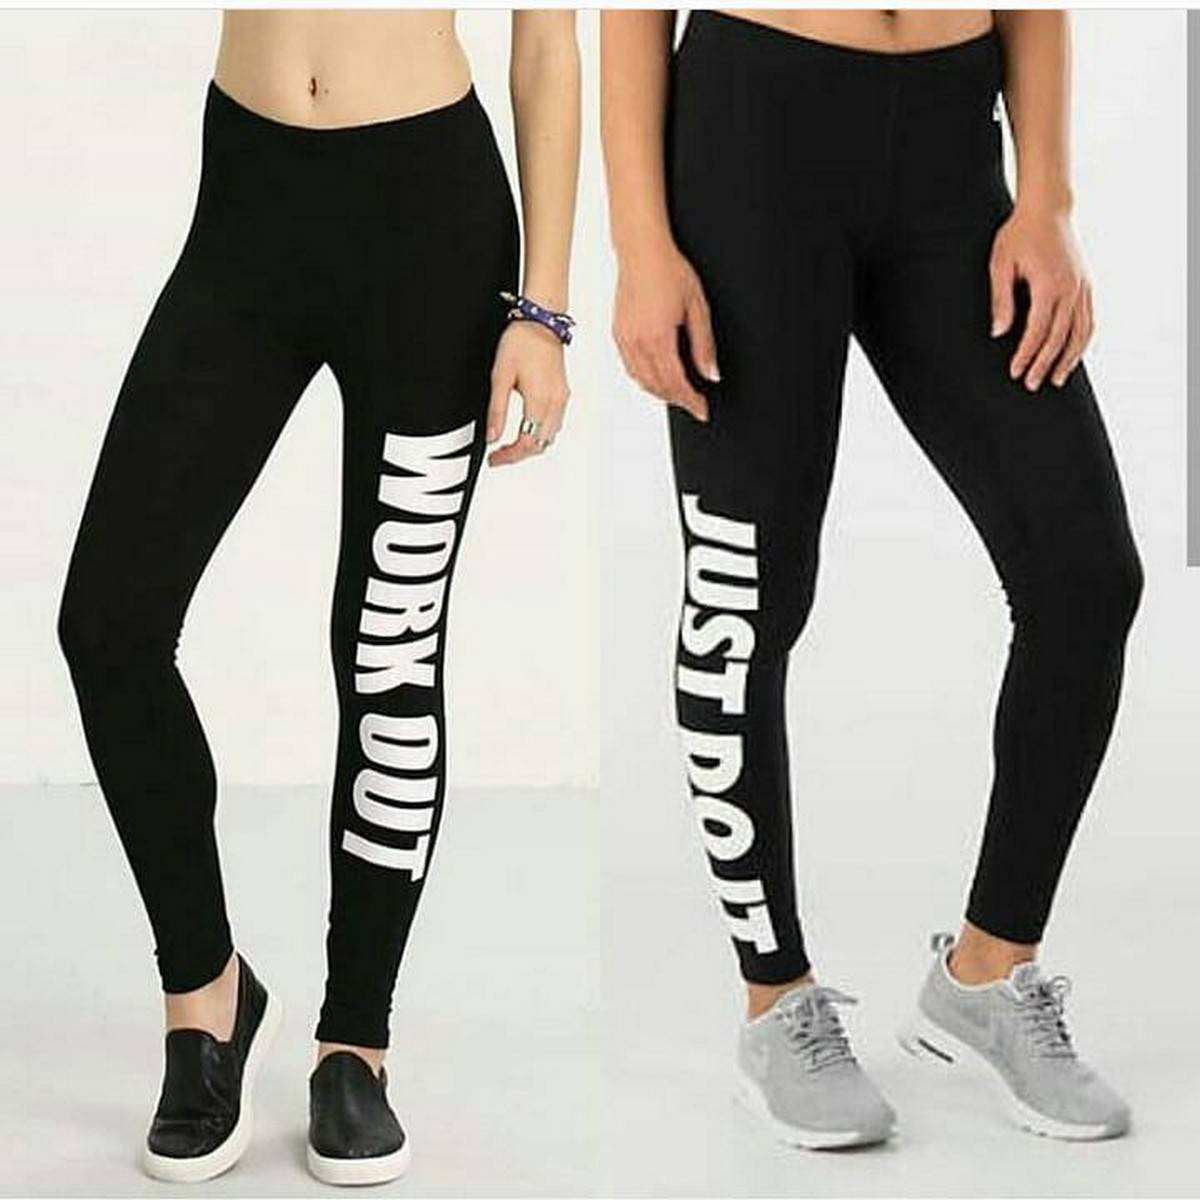 Pack of 2 - YOGA GYM Work Out Jogging Legging Tights for Females